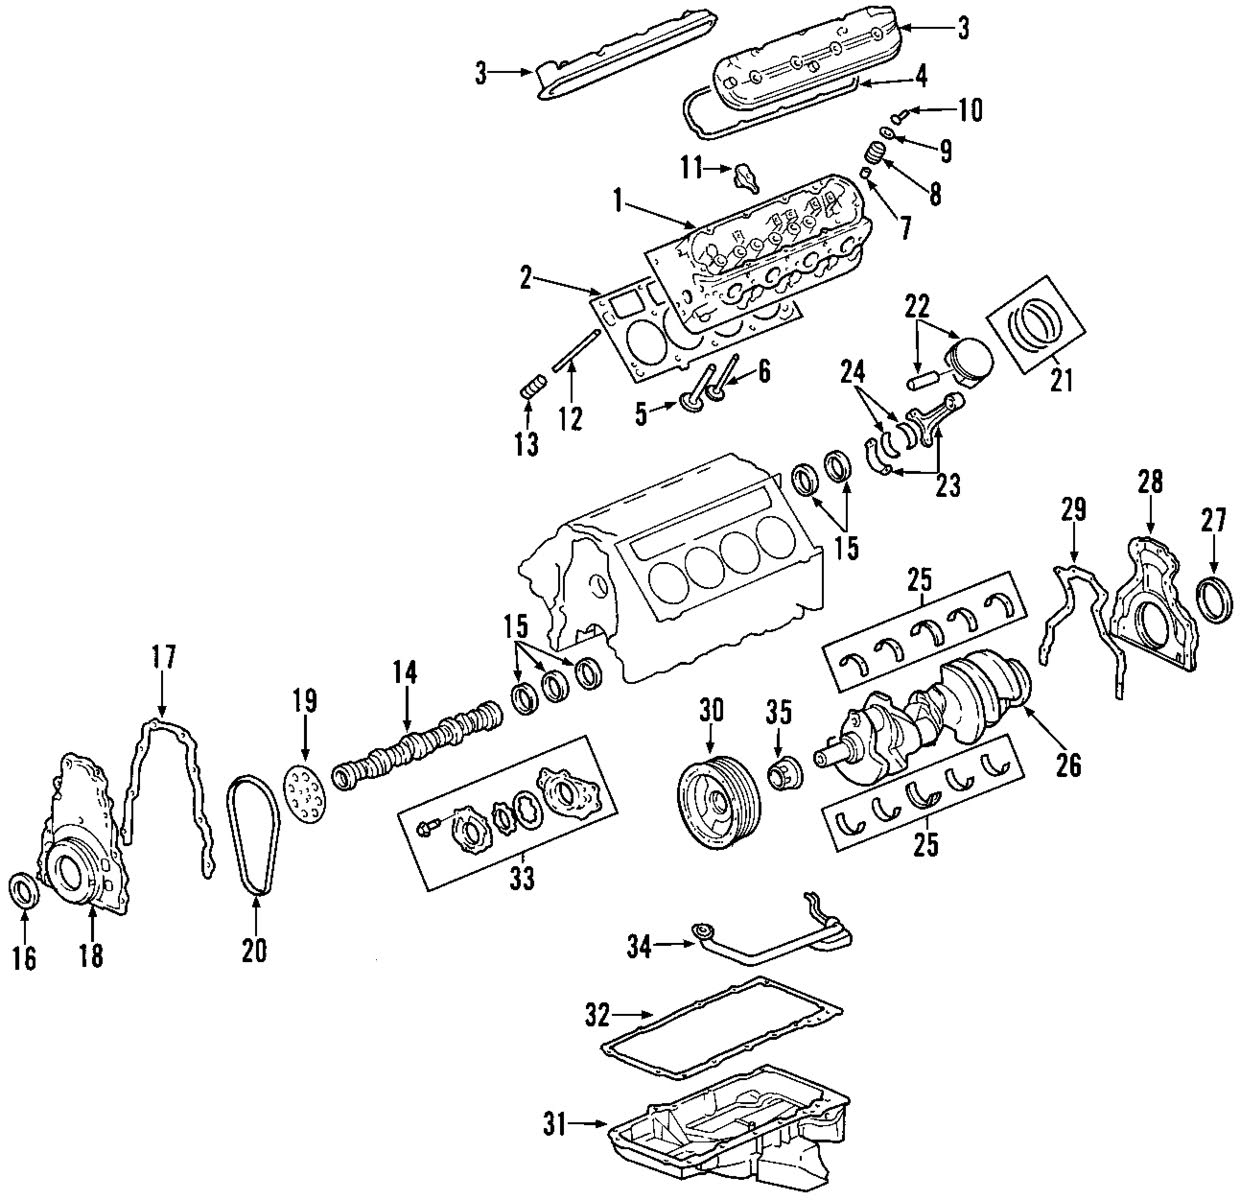 GMC Sierra 1500 Questions - Intake Manifold Part? - CarGurus | 2005 Gmc Sierra Engine Diagram |  | CarGurus